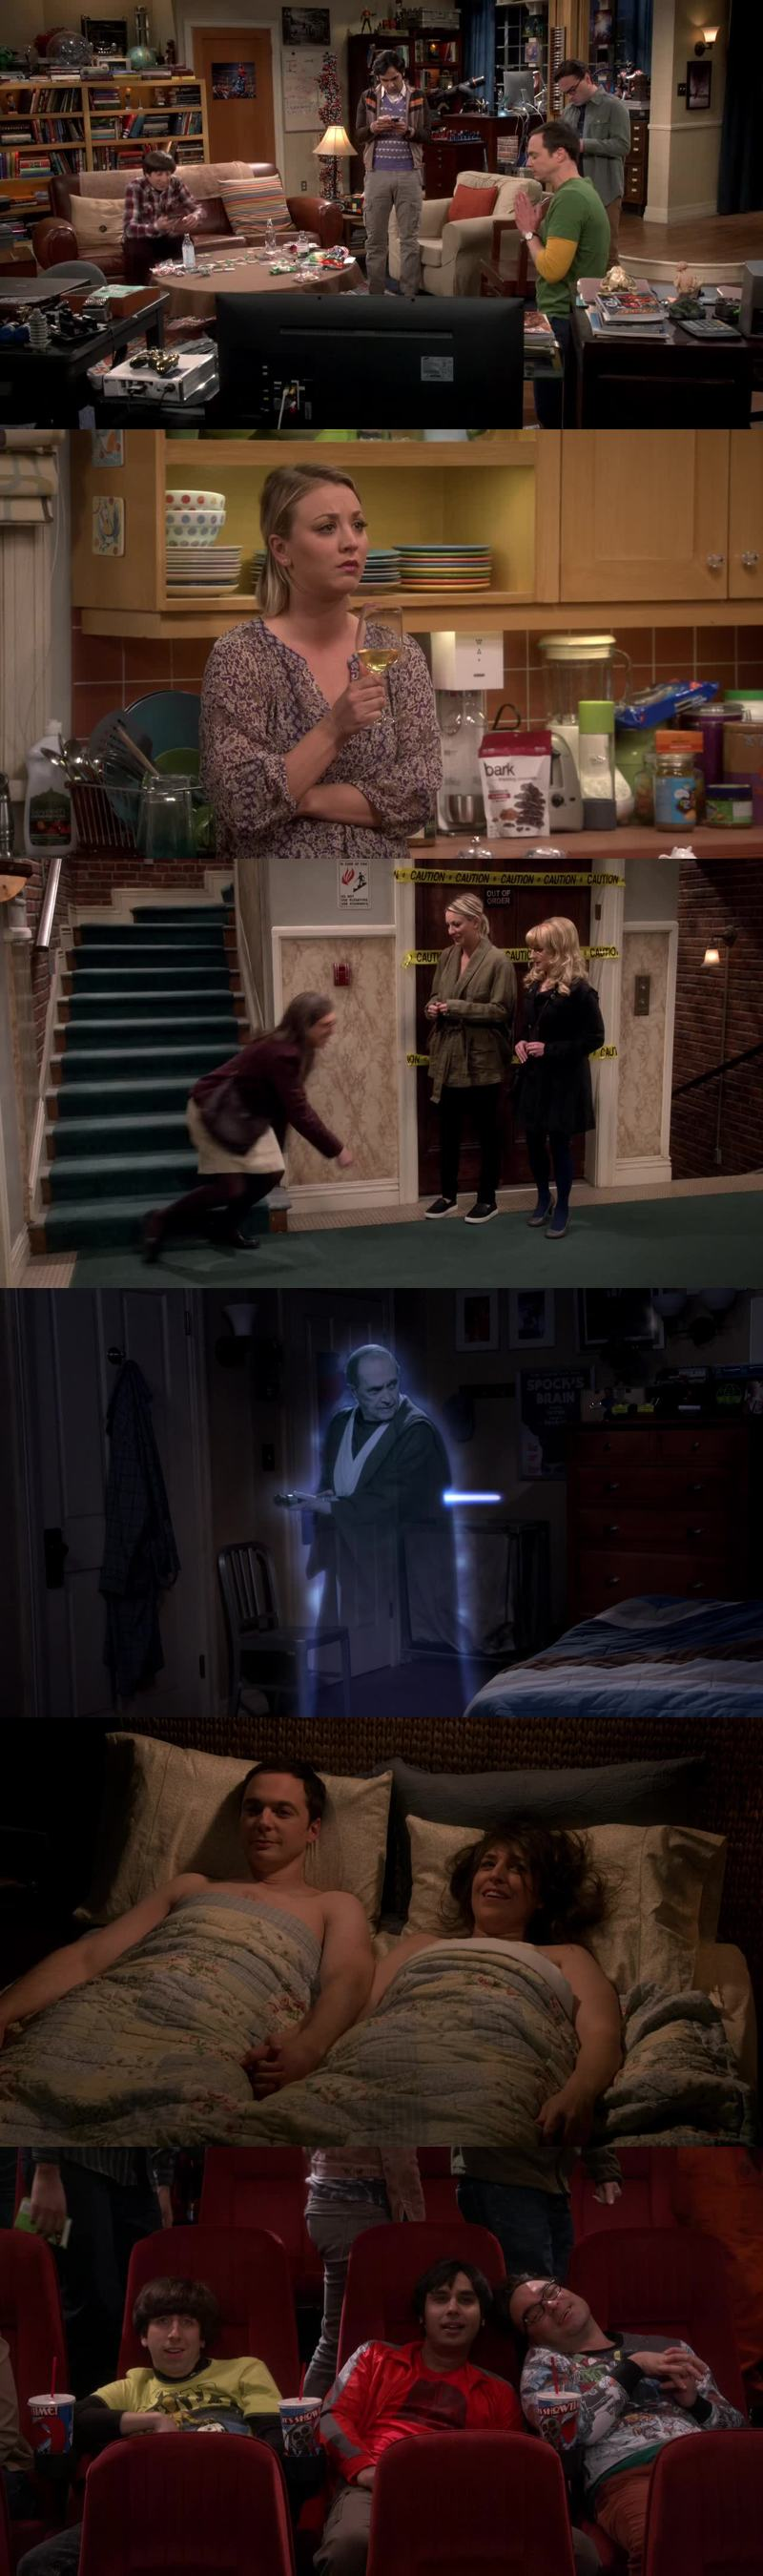 THE BEST BIG BANG THEORY EPISODE EVEEEEEEER!  I'VE NEVER LAUGHED SO HARD WITH AN EPISODE LIKE I DID WITH THIS ONE!!!  EPIC!